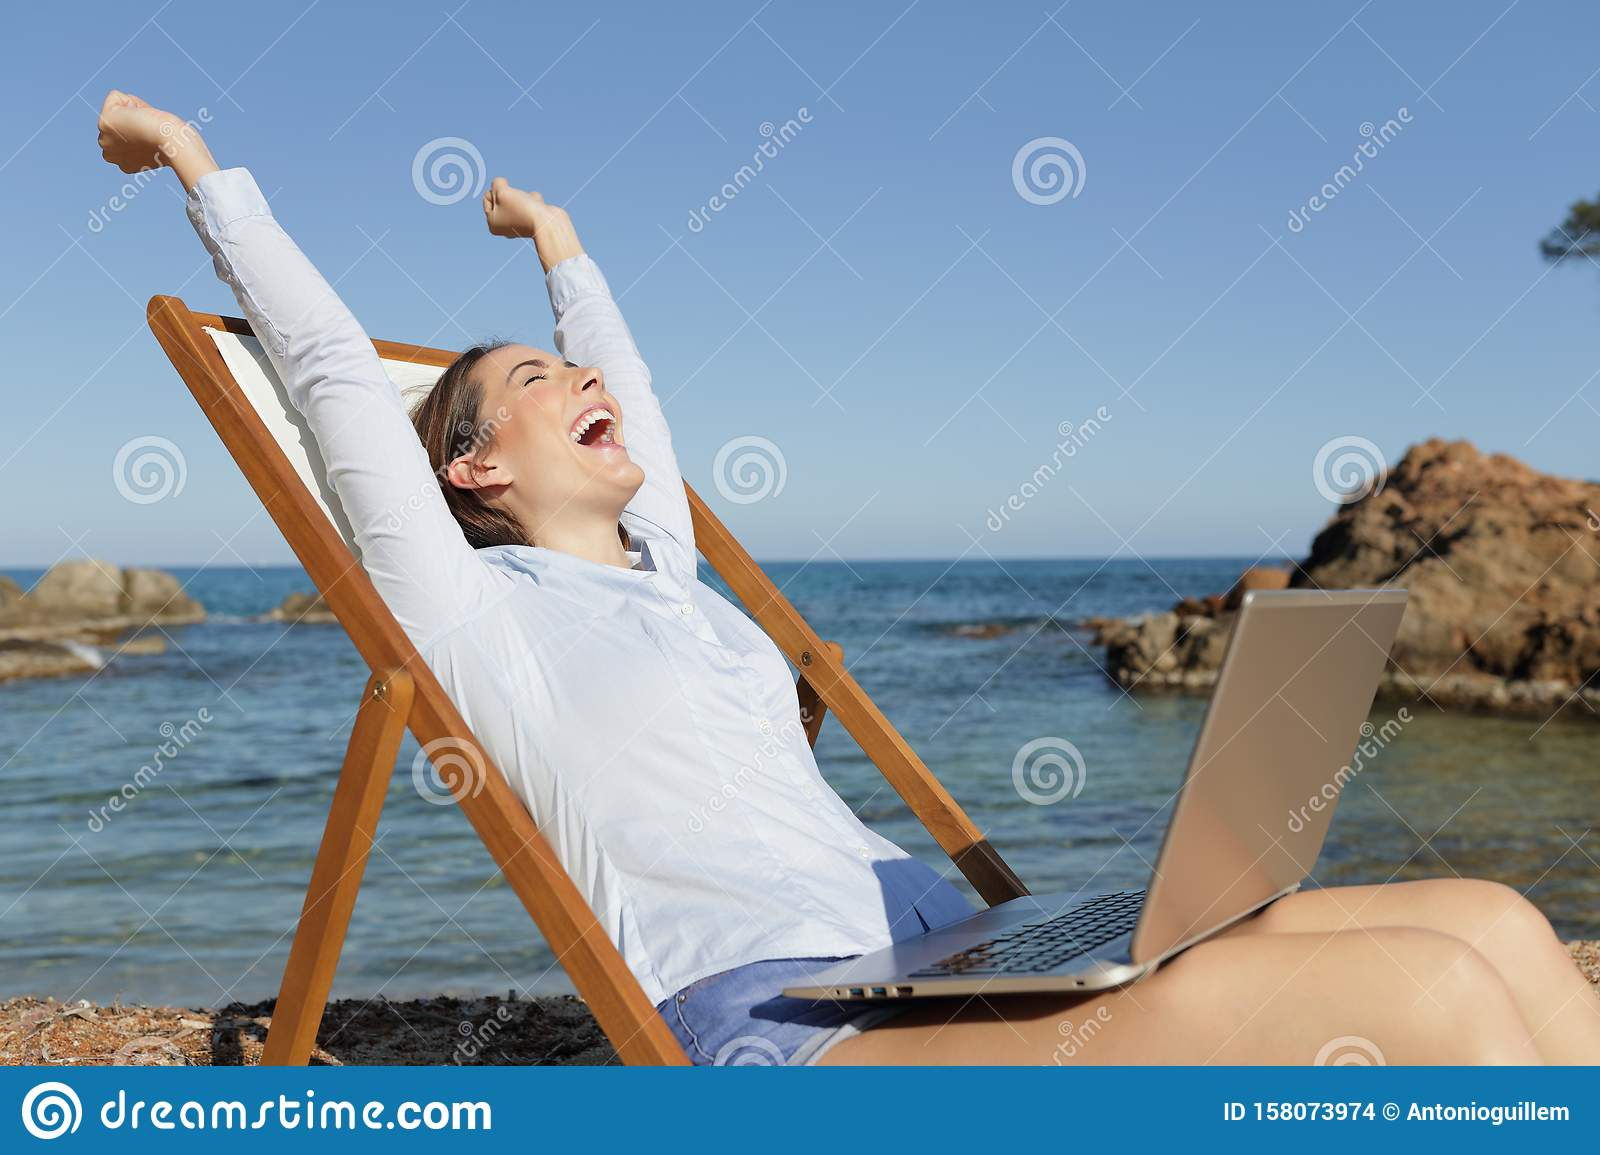 Excited entrepreneur with laptop celebrating success